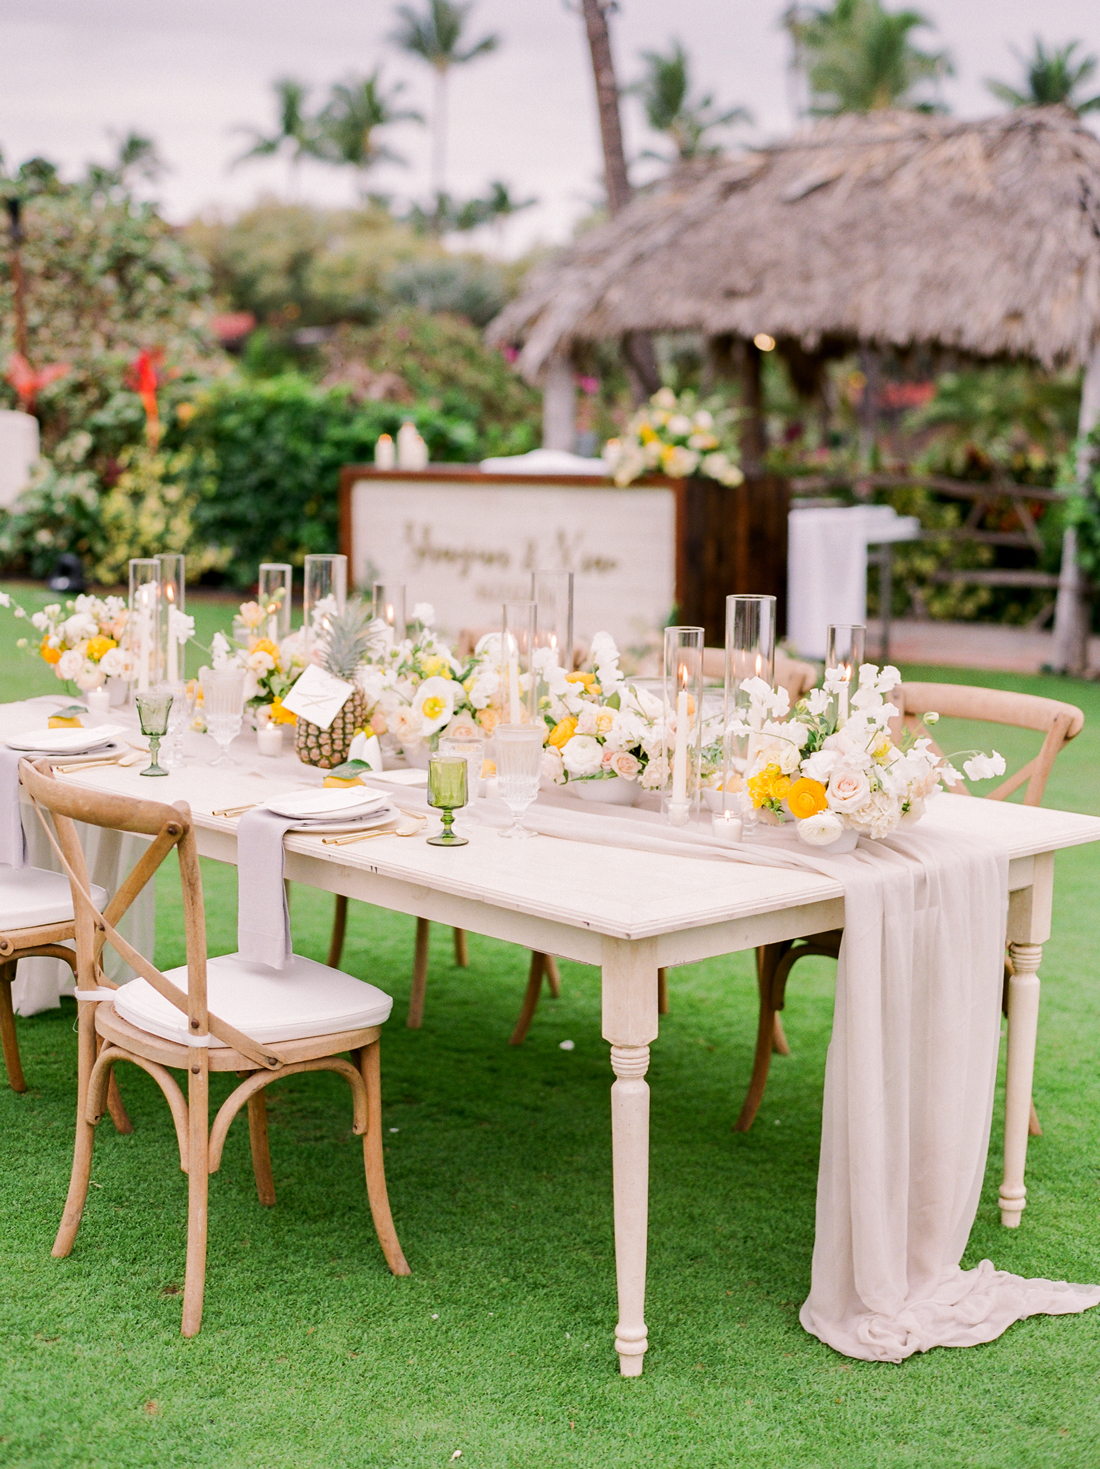 light gray and ivory table linens with yellow decor reception display